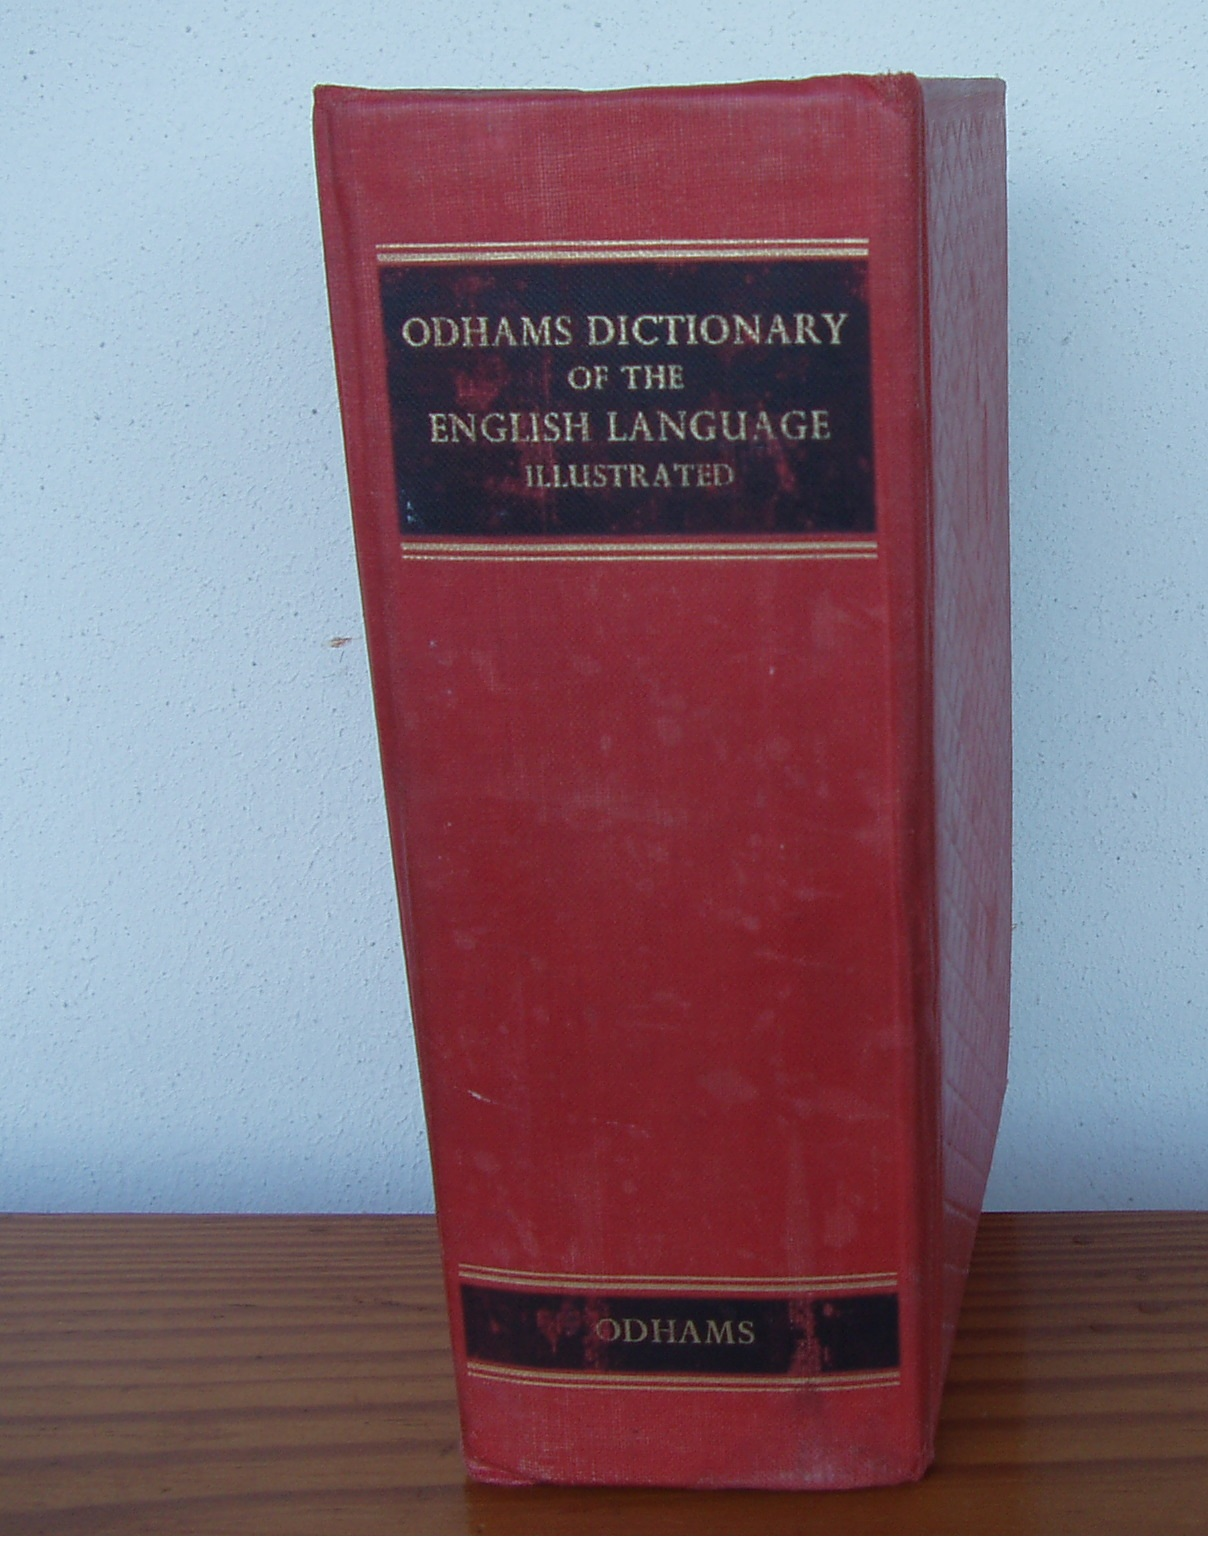 Odhams Dictionary of the English Language. Illustrated. by Smith, A. H. and J. L. O'Loughlin